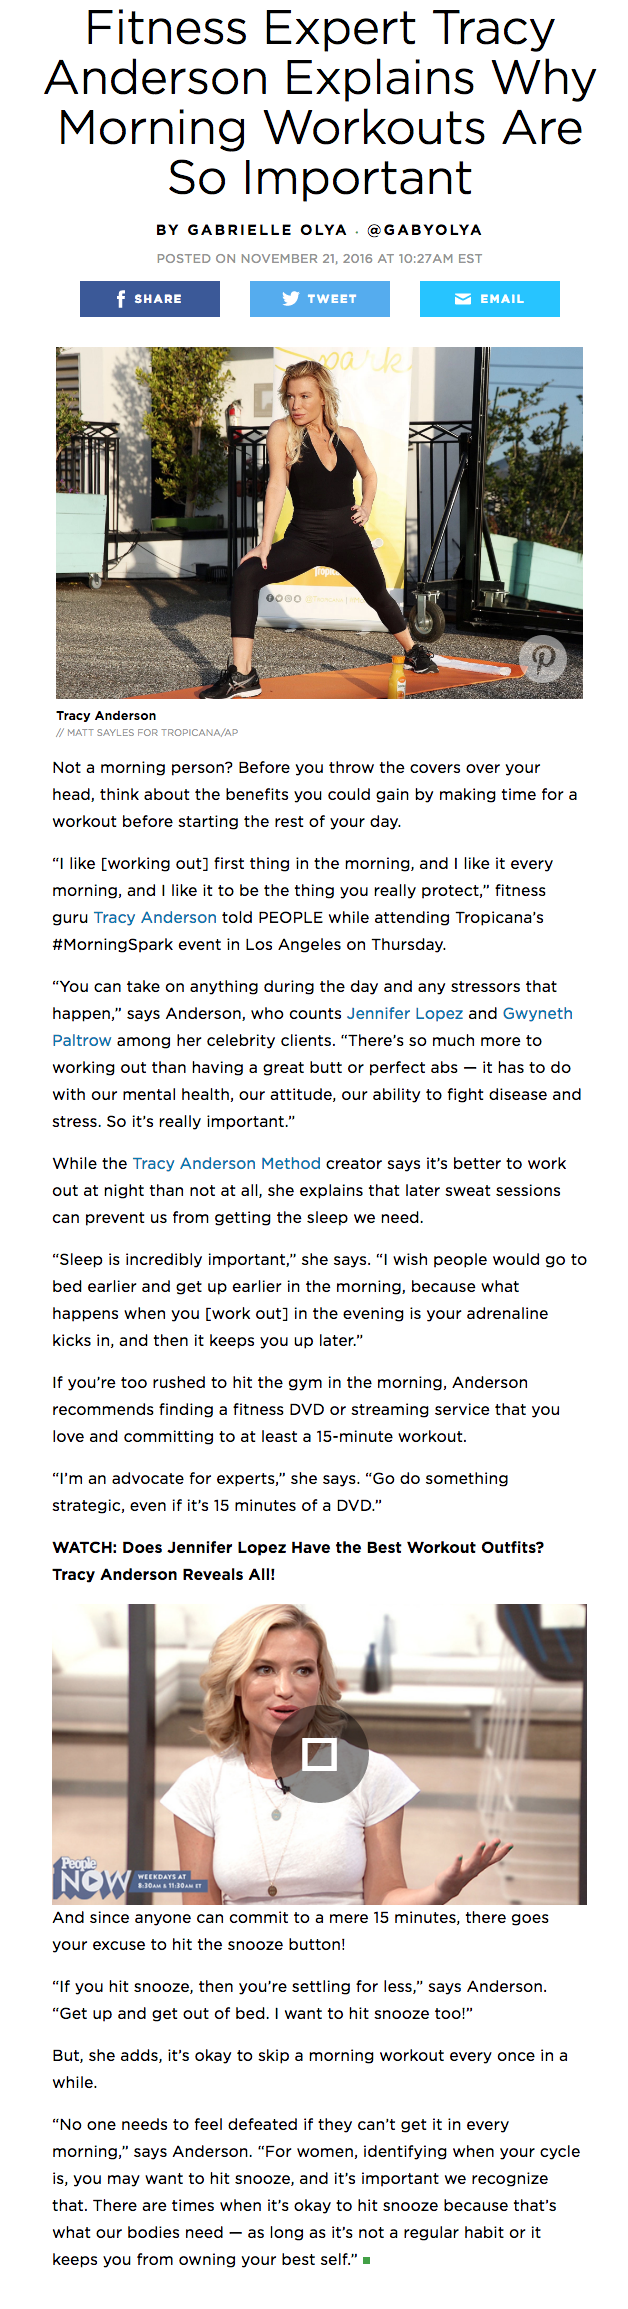 fitness-expert-tracy-anderson-explains-why-morning-workouts-are-so-important